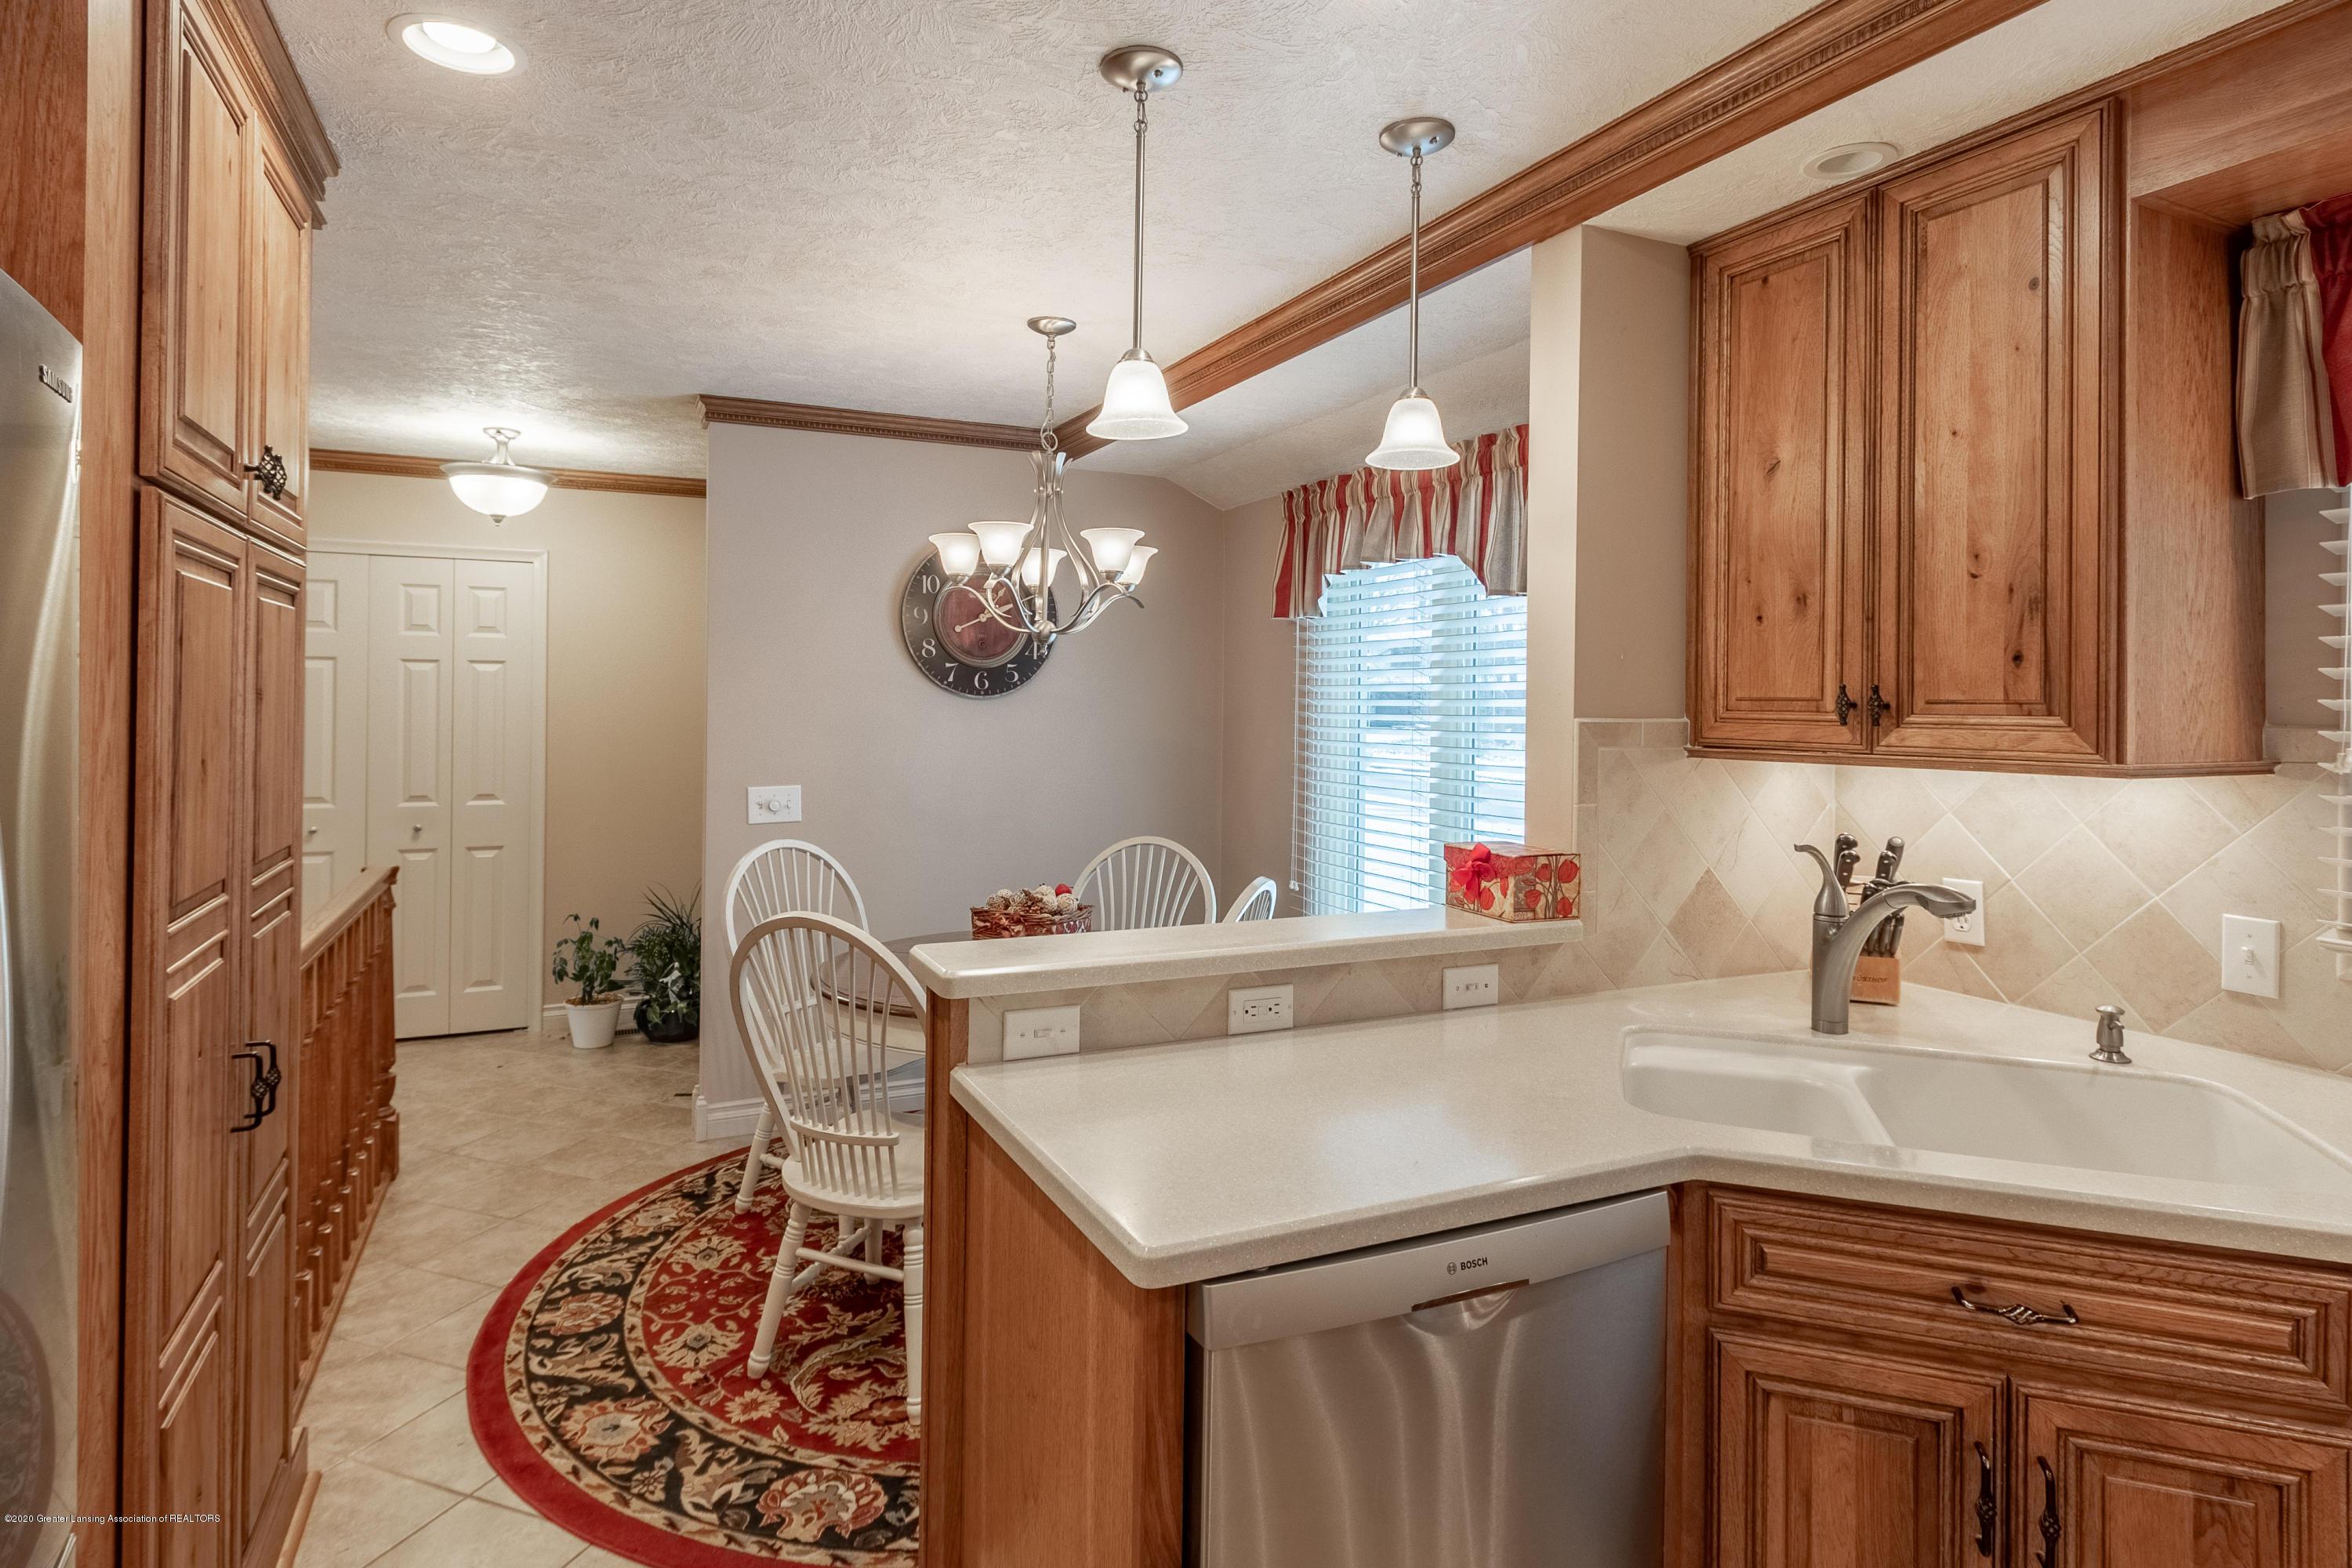 2060 Tamarack Dr - Kitchen and Dining Area - 14